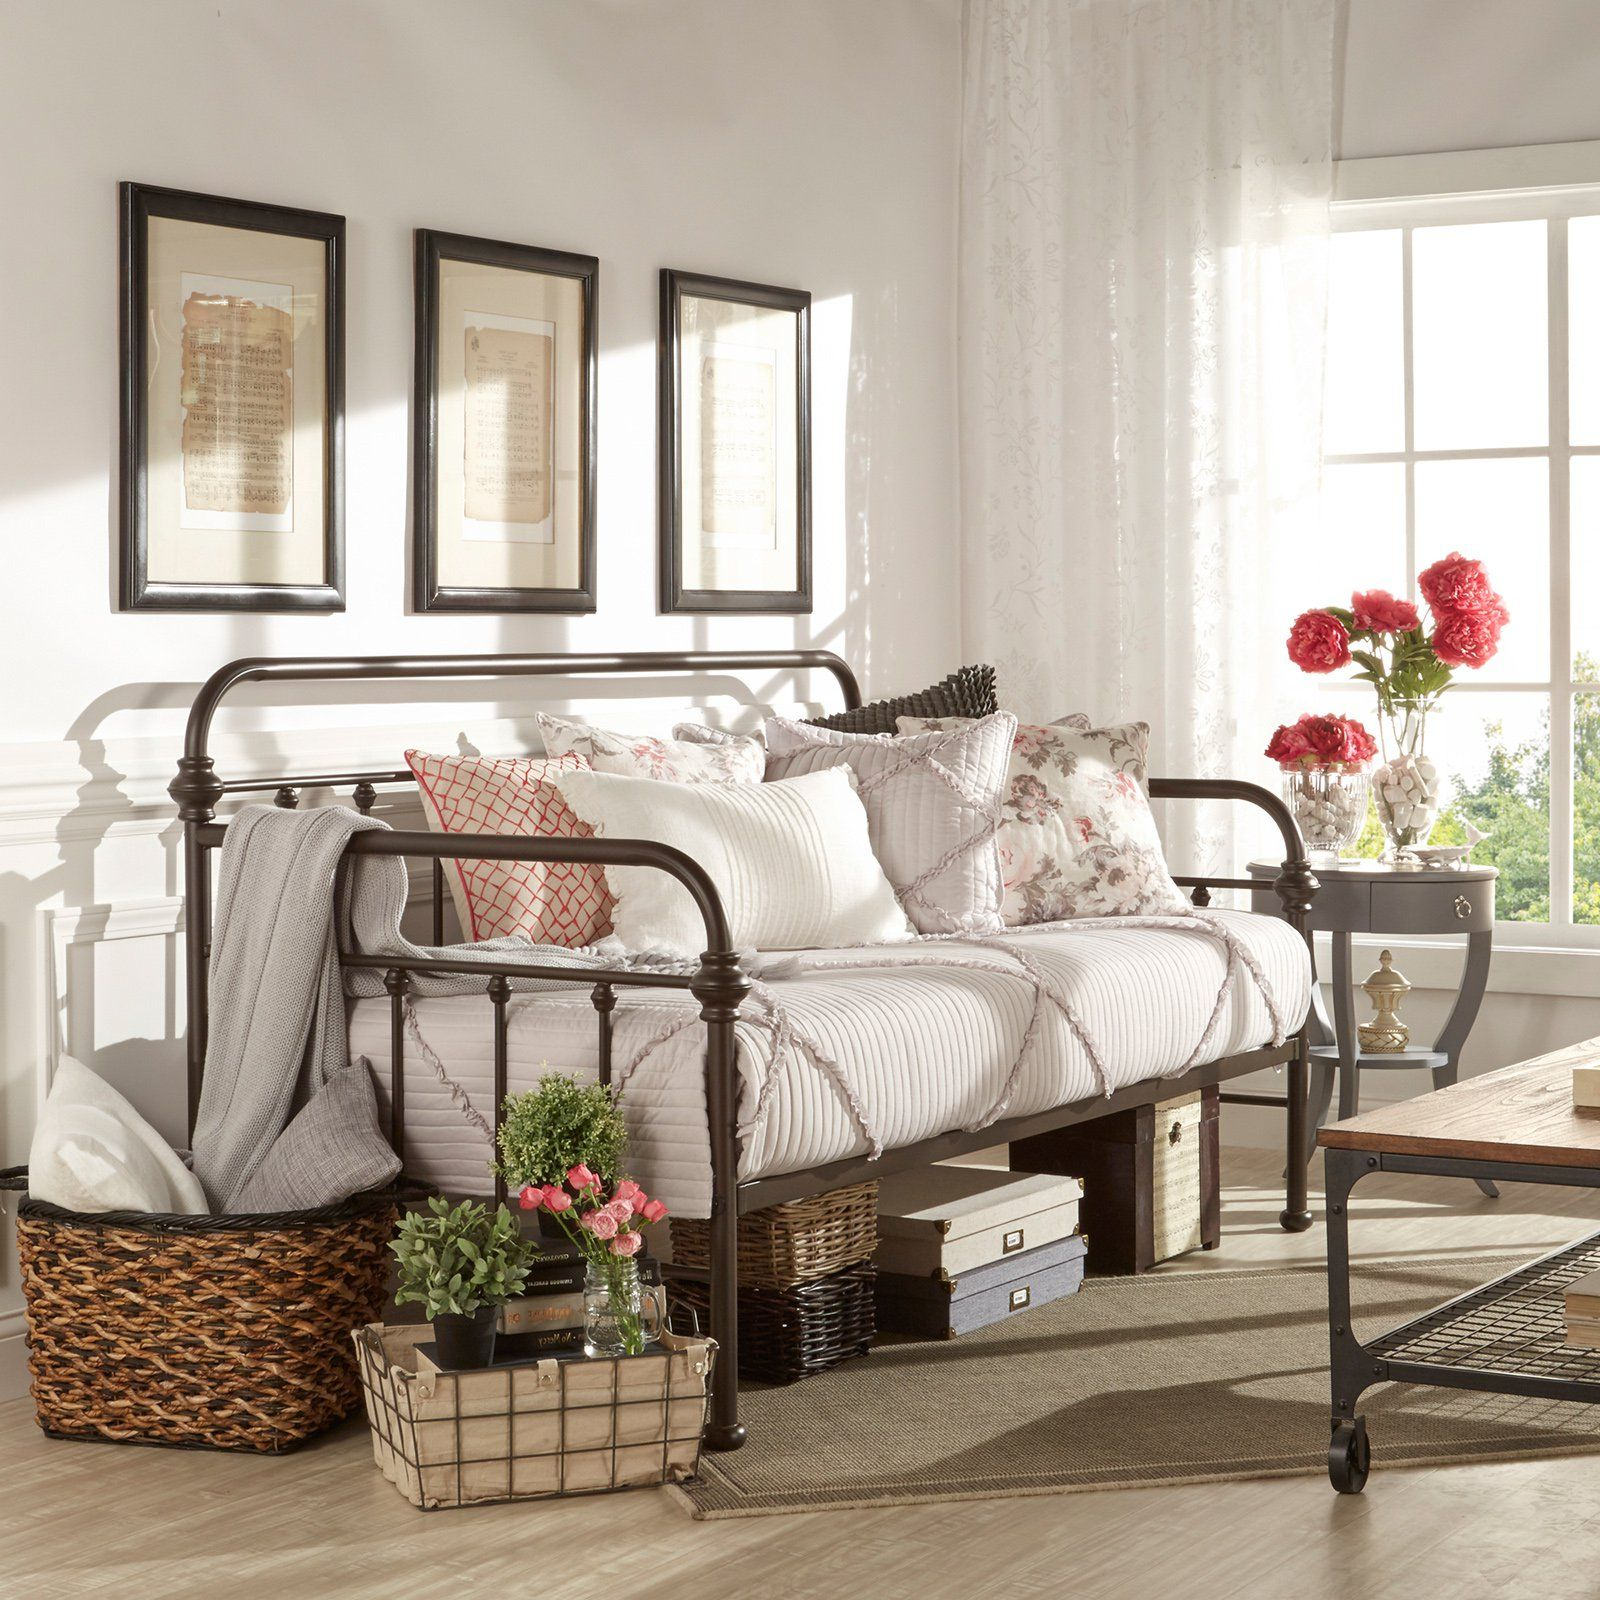 Weston Home Tadley Metal Daybed Products Daybed Room